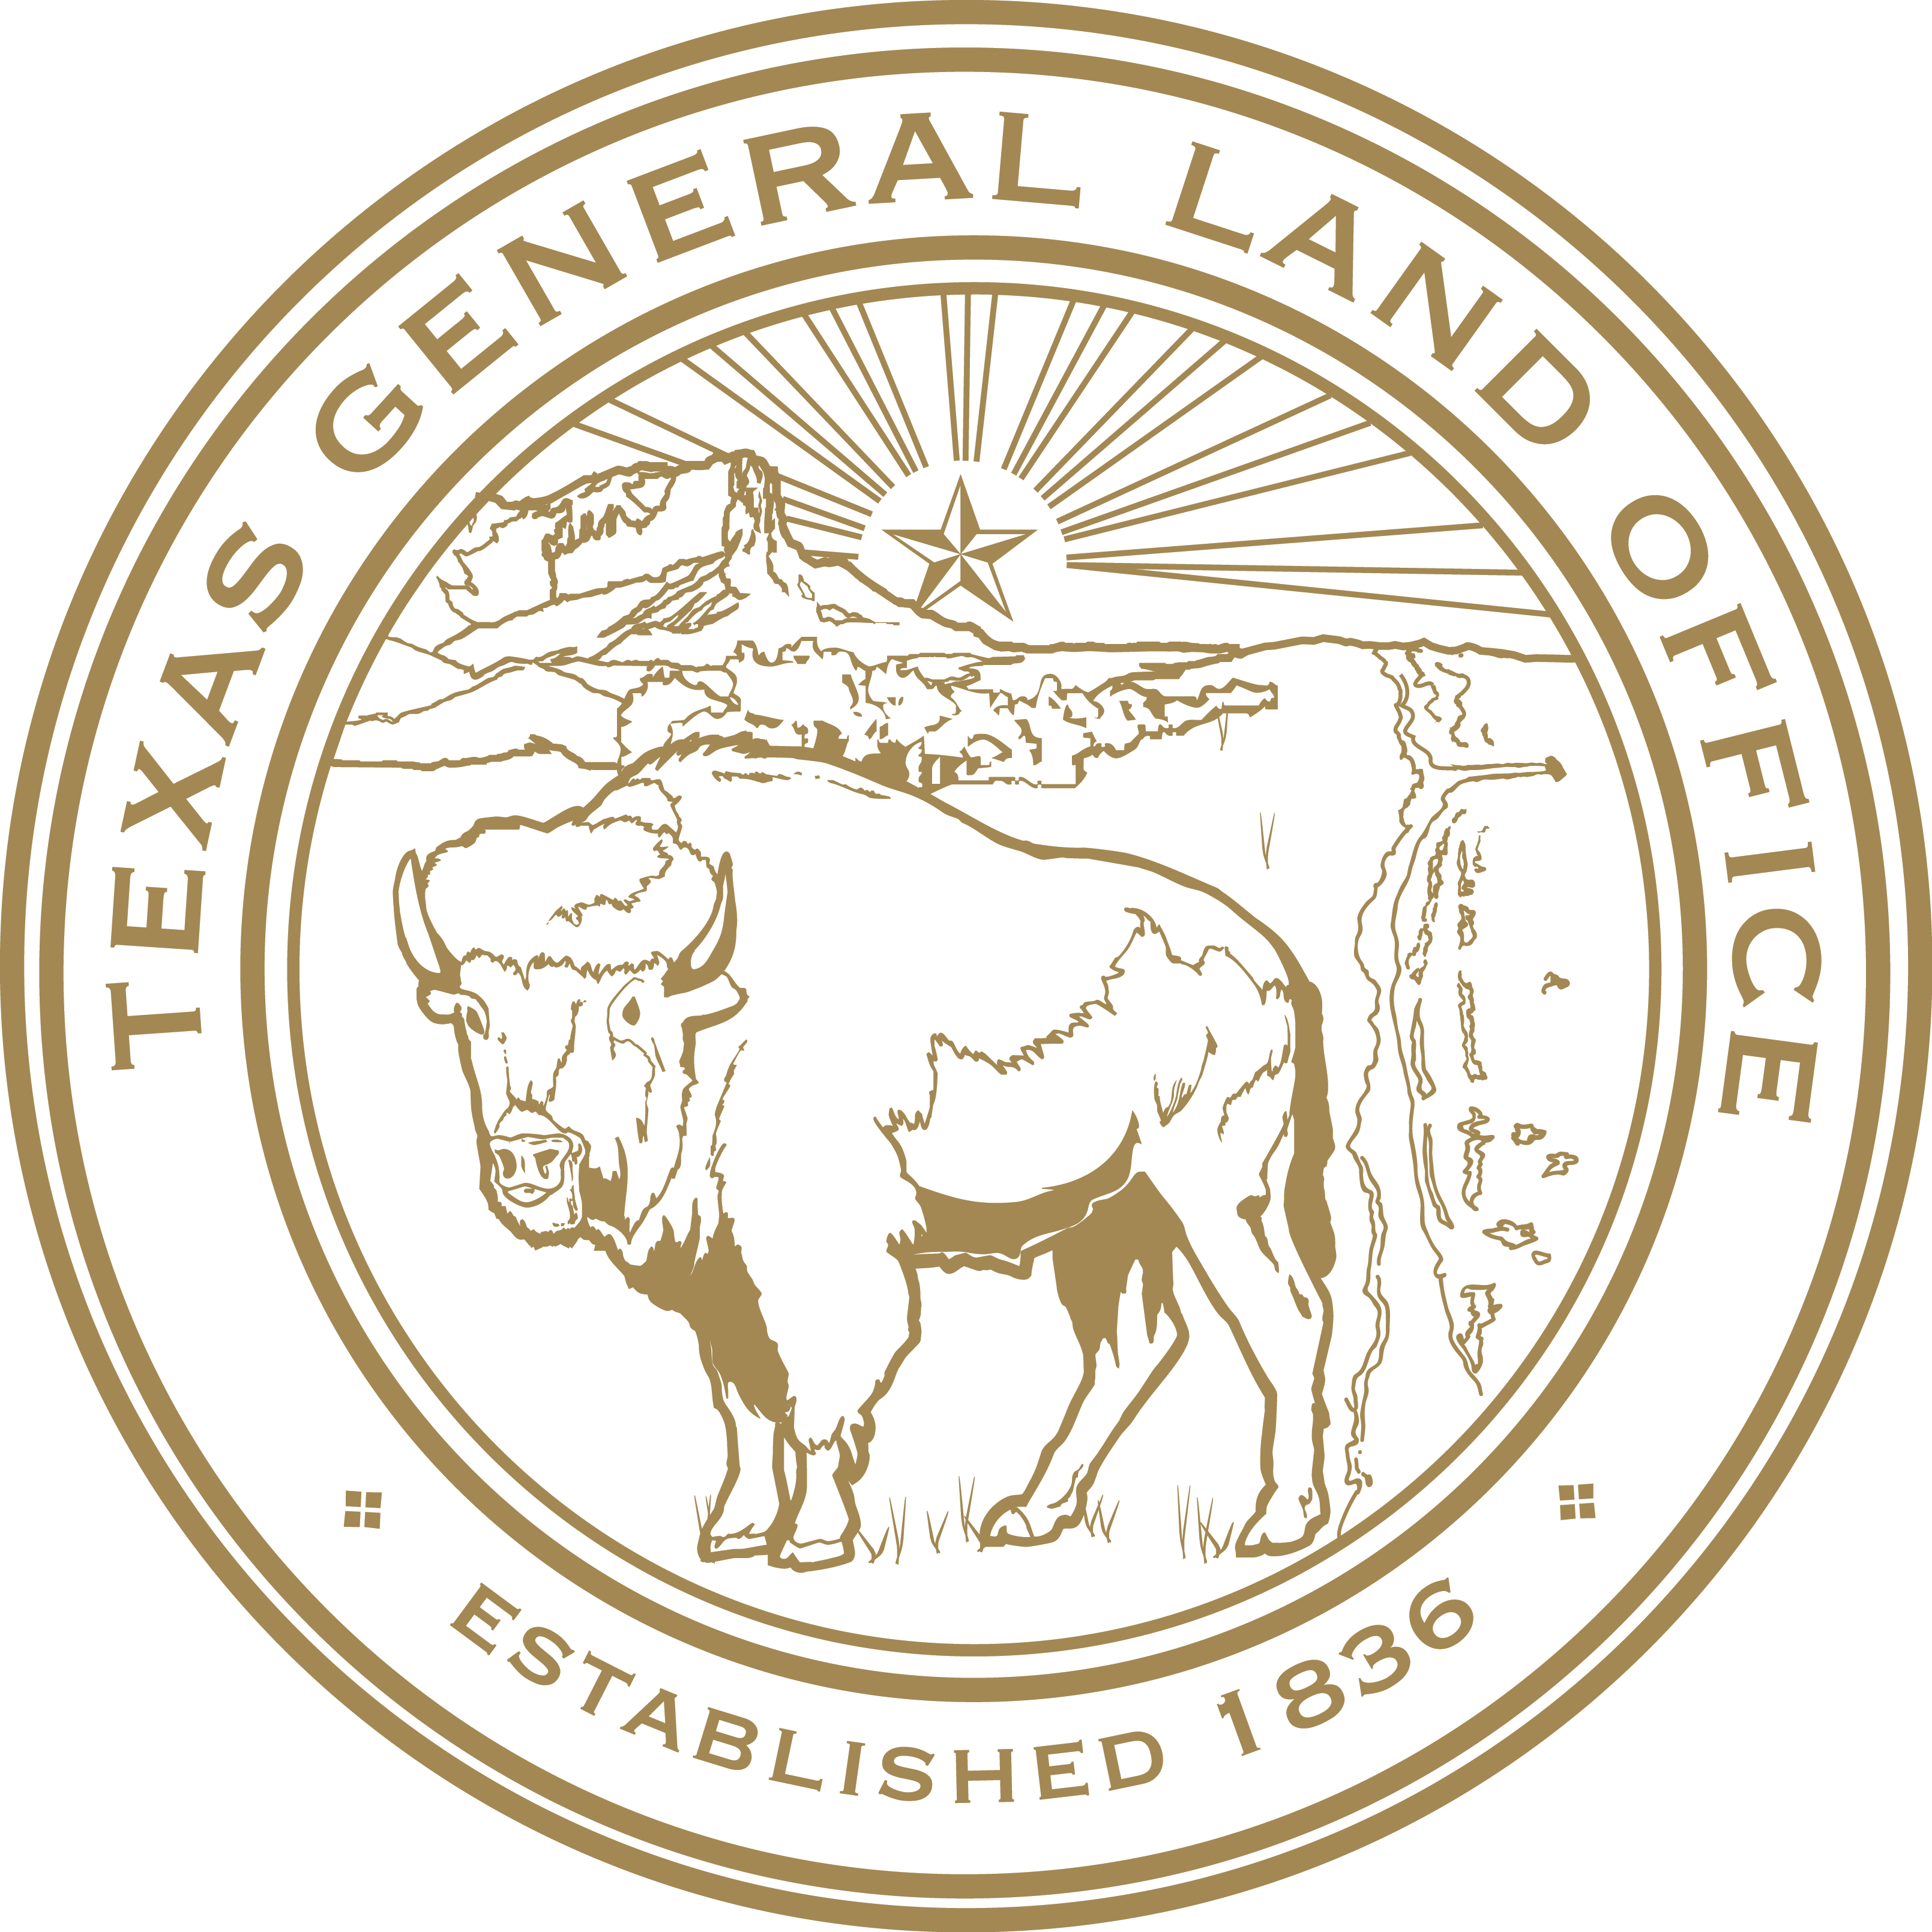 Texas General Land Office seal featuring a buffalo and a star rising over a cliff.